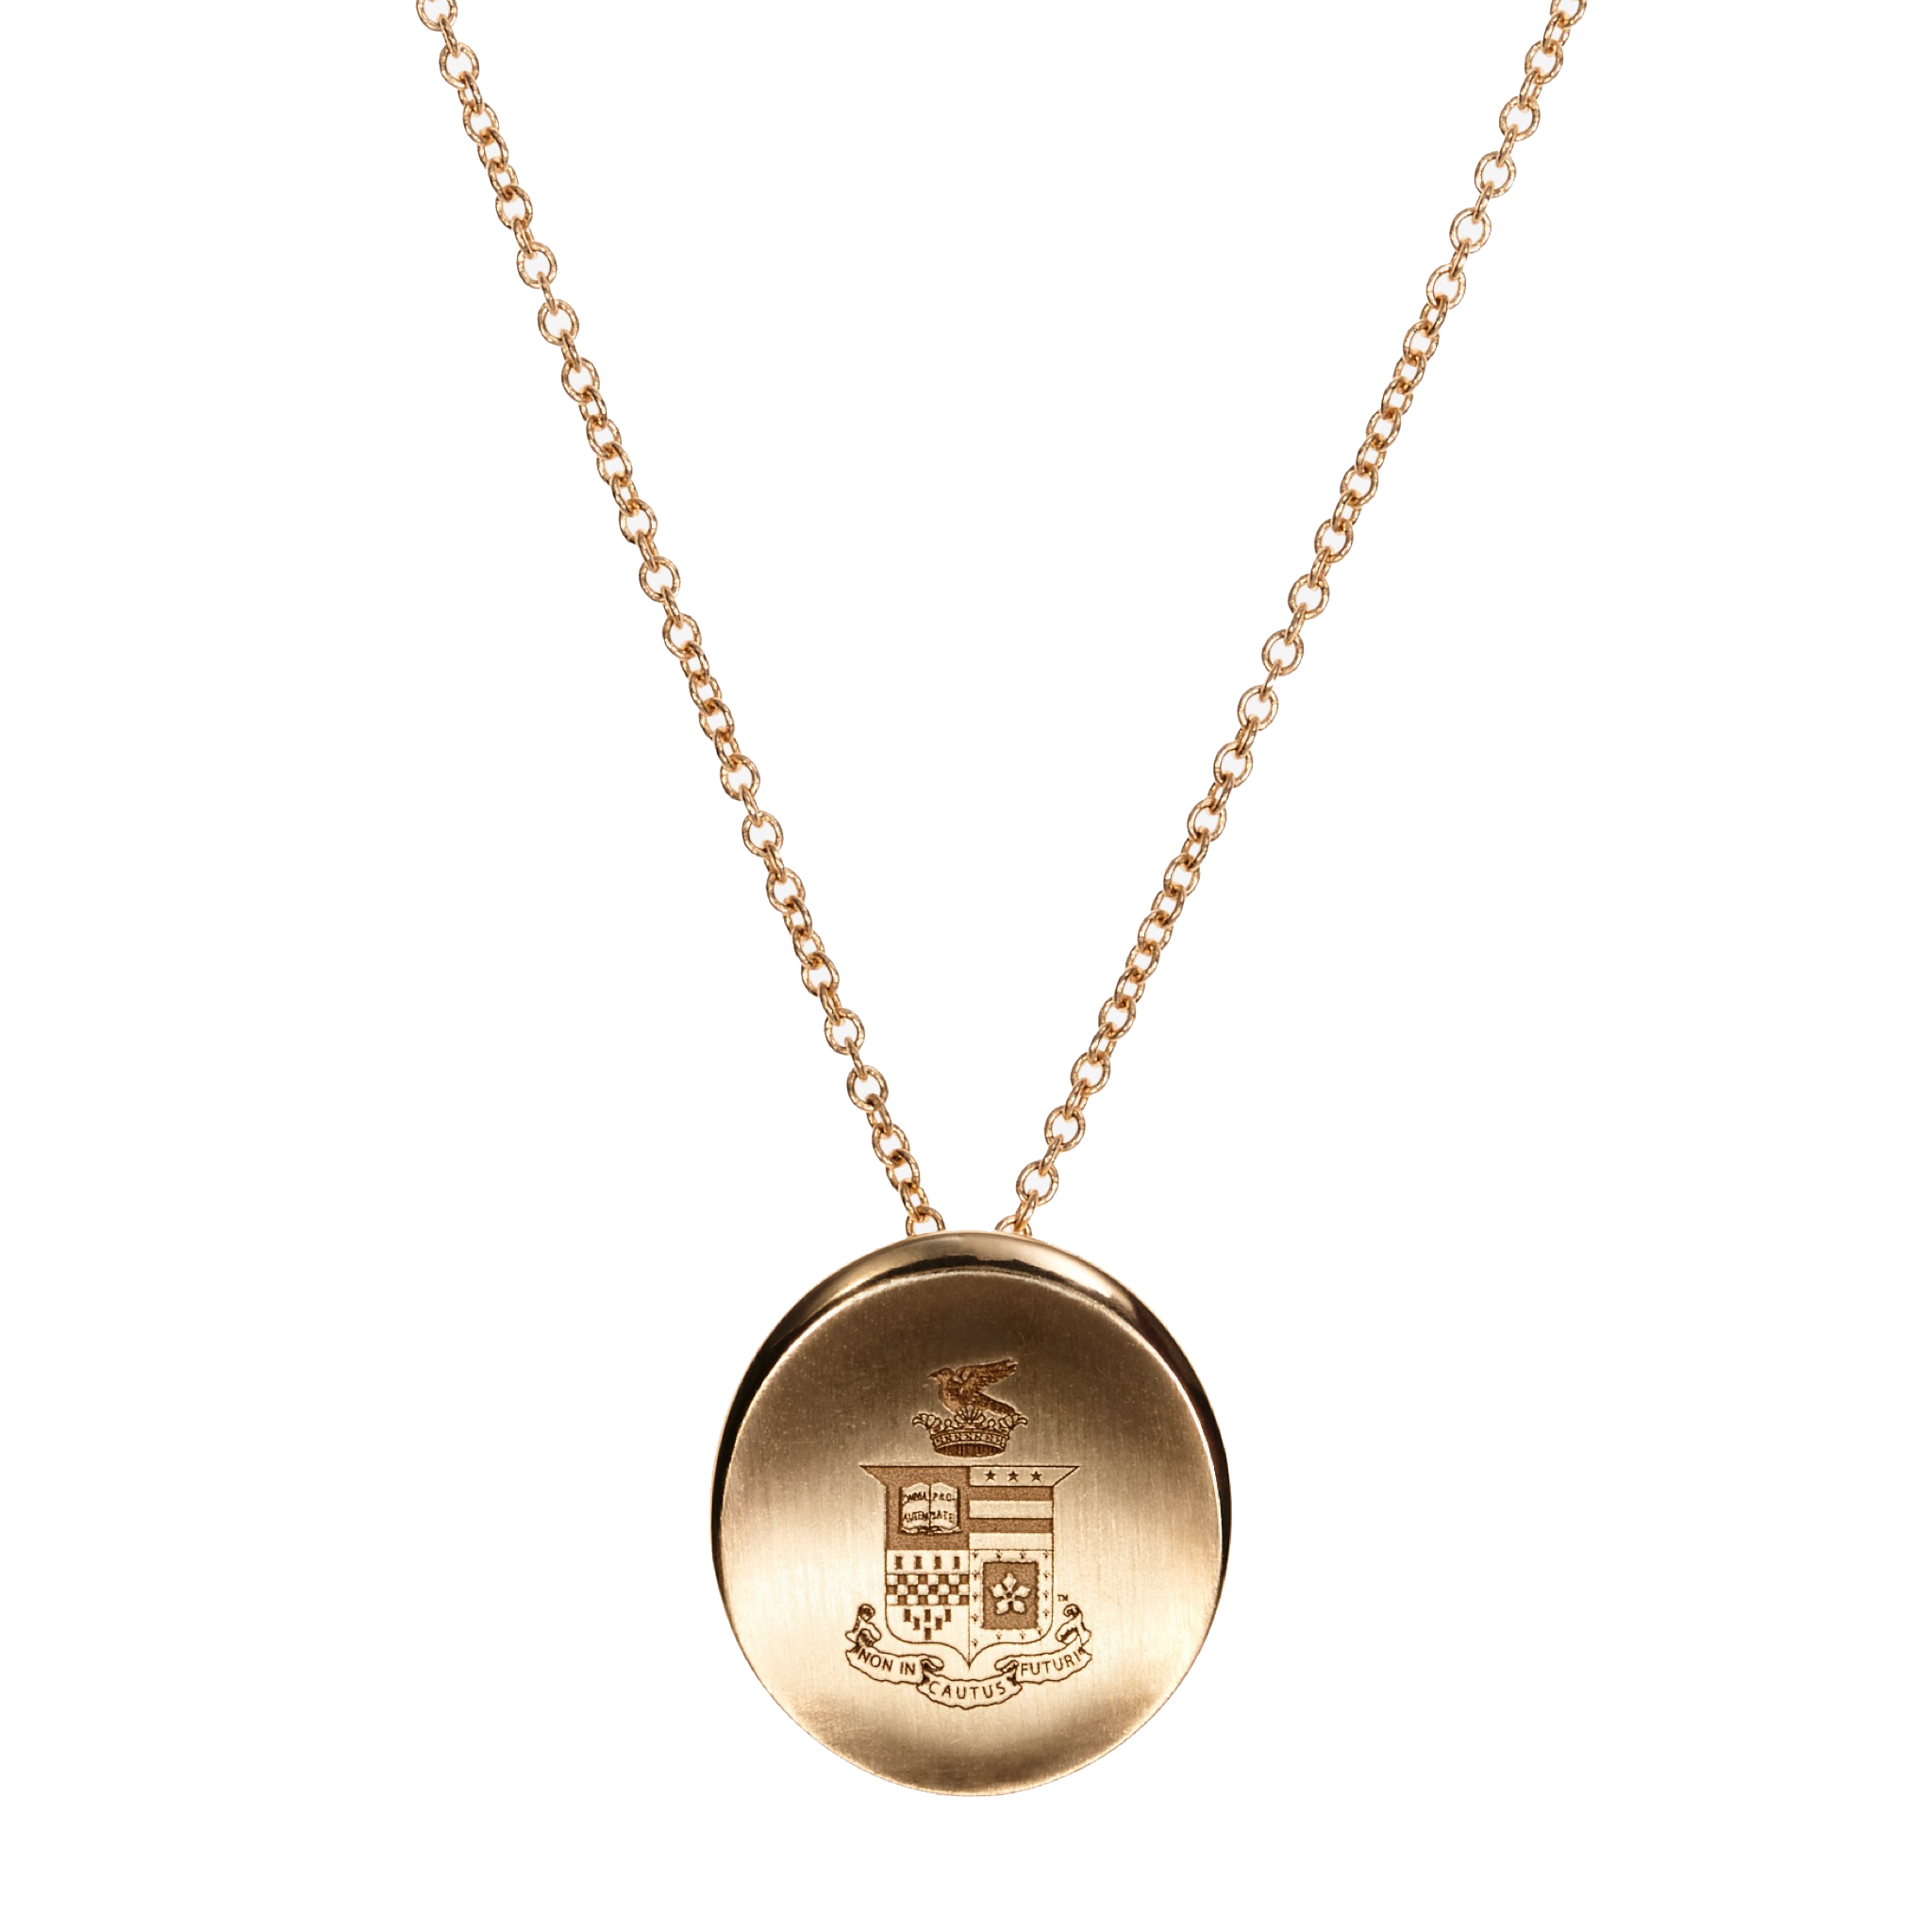 Image For Kyle Cavan Organic Crest Necklace, Gold